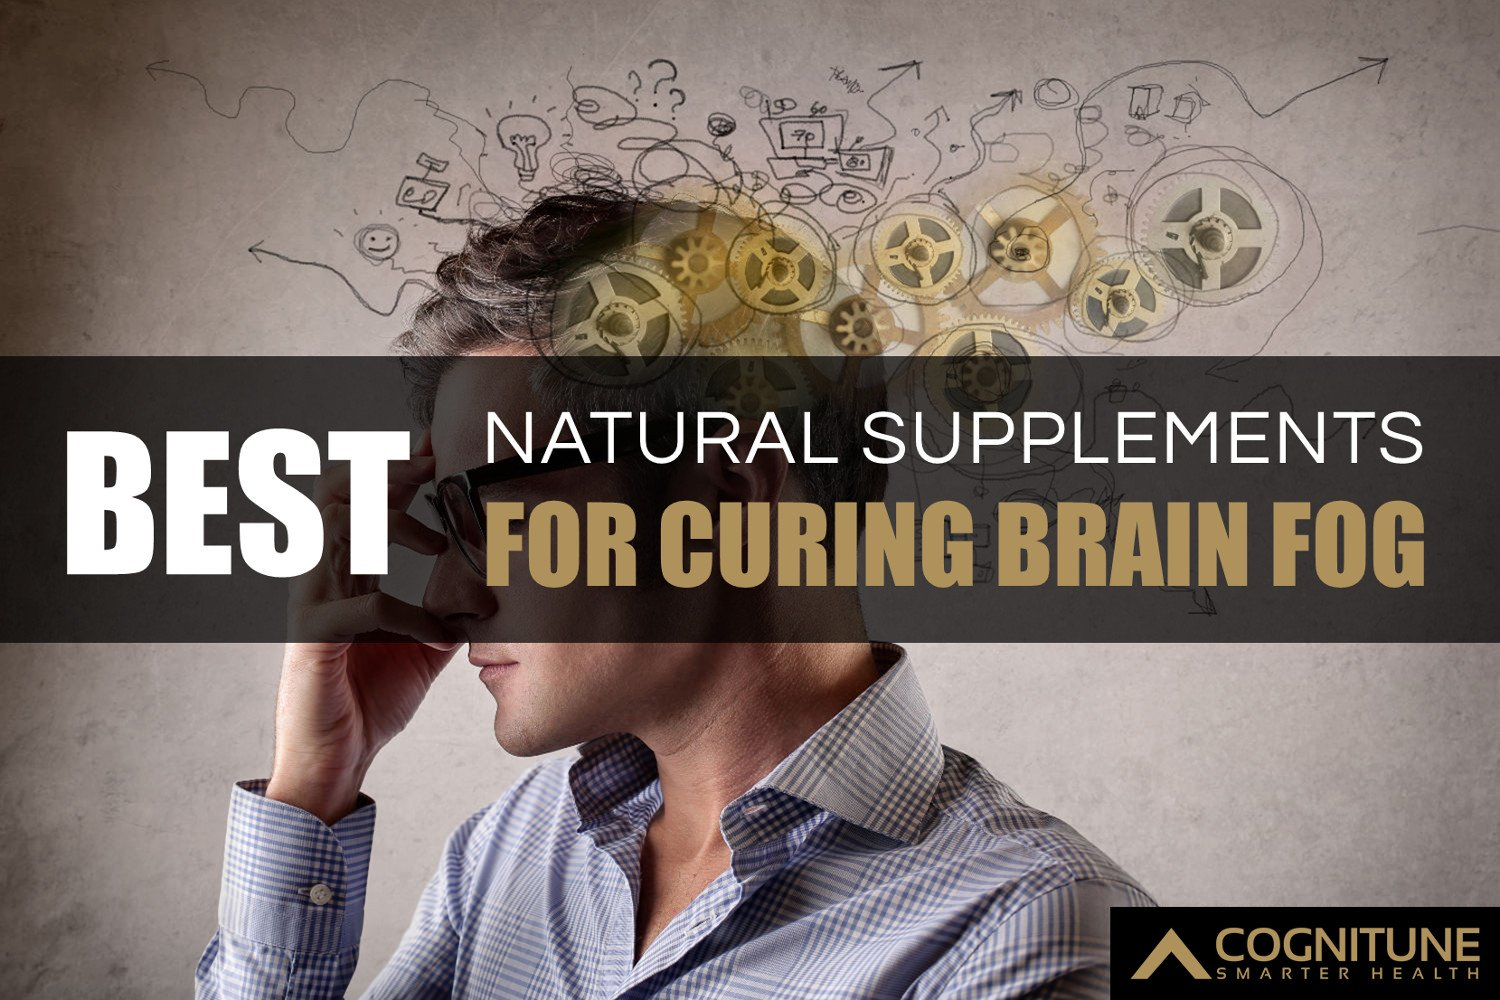 10 Best Natural Supplements for Curing Brain Fog & Mental